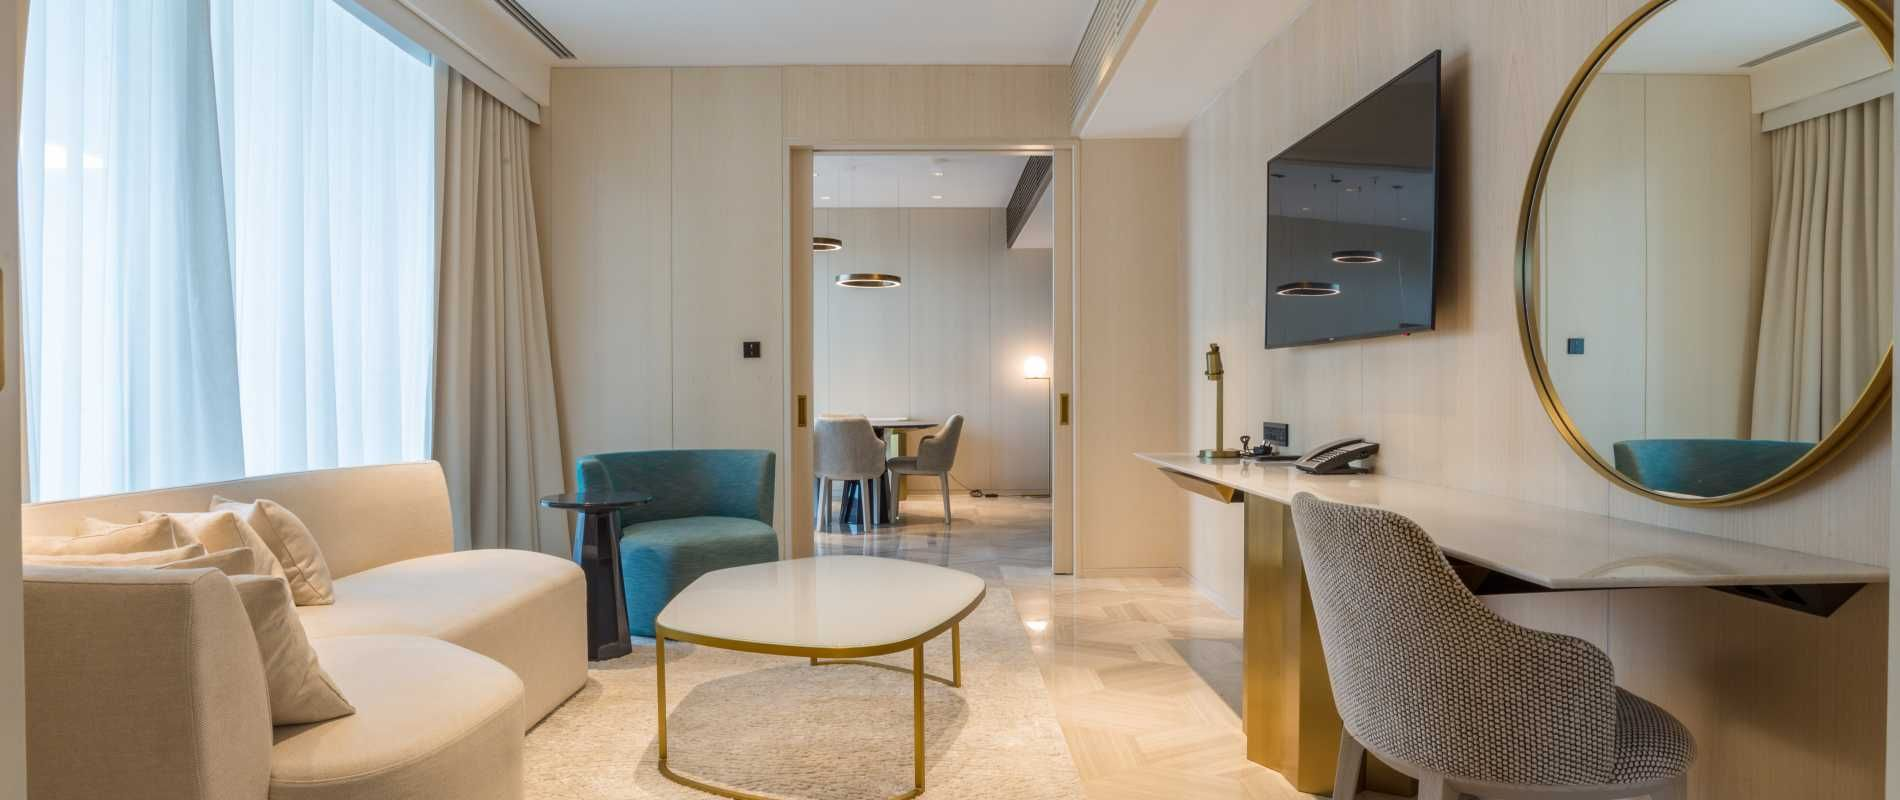 Fully Furnished One Bedroom Hotel Apartment In The Five Palm Jumeirah Dubai Luxurypr Furnished Apartments For Rent Furnished Apartment One Bedroom Apartment